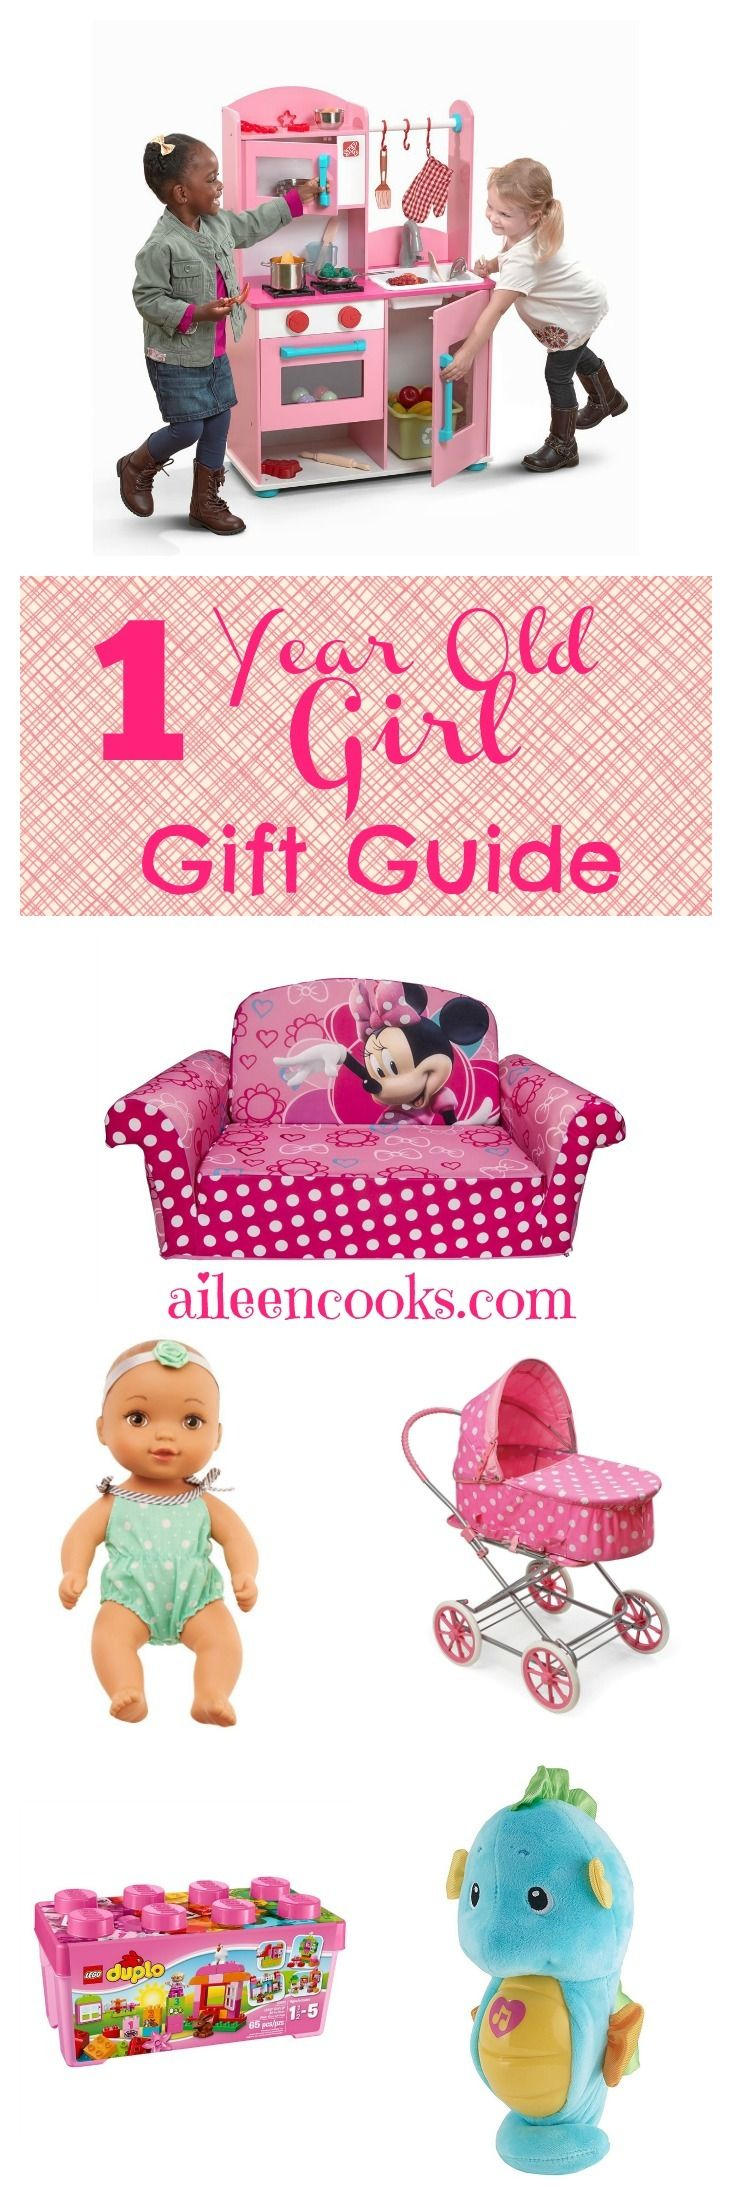 This one year old girl gift guide is a collection of quality, tried and true toys from a mom of 3. These toys are perfect for your older baby and toddler girls.  All of these toys are available on Amazon, too! via @aileencooks [sponsored]